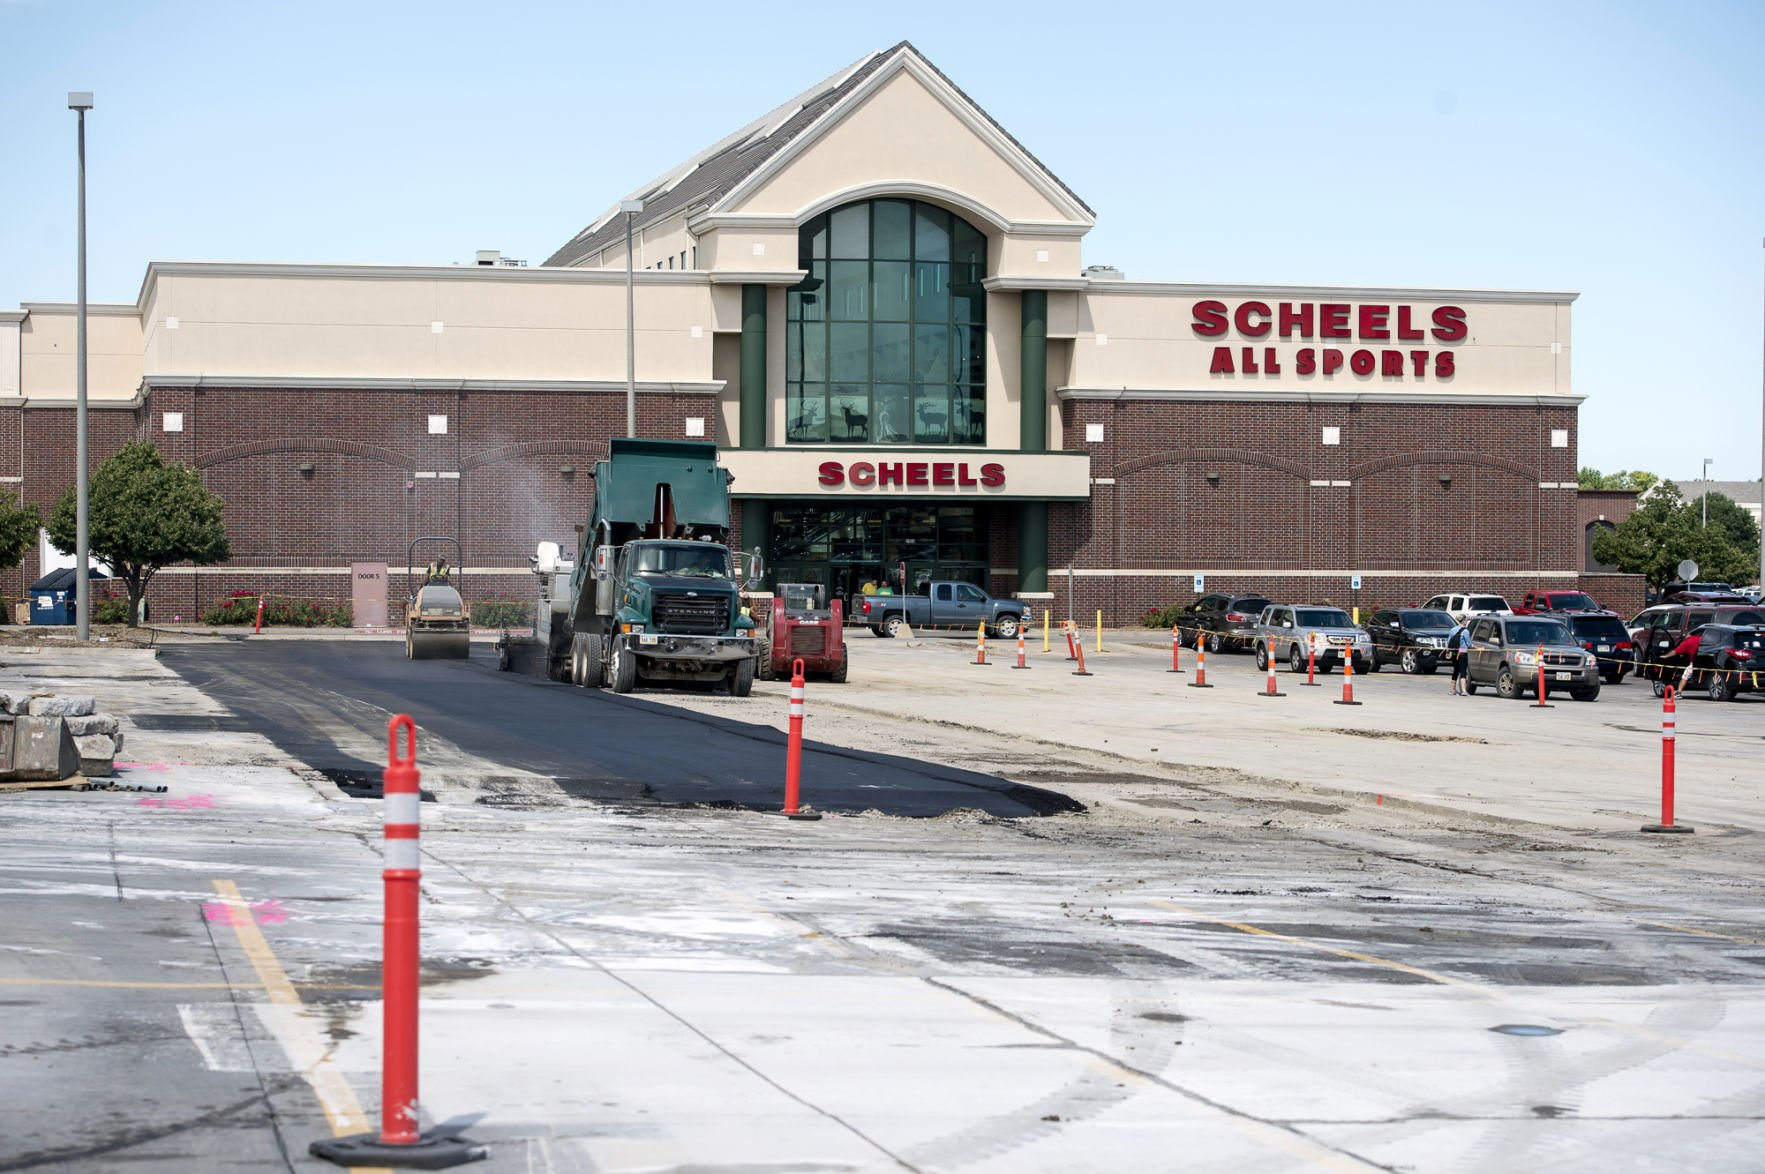 image about Scheels Coupons Printable referred to as Scheels coupon code 2018 / Peter alexander coupon code 2018